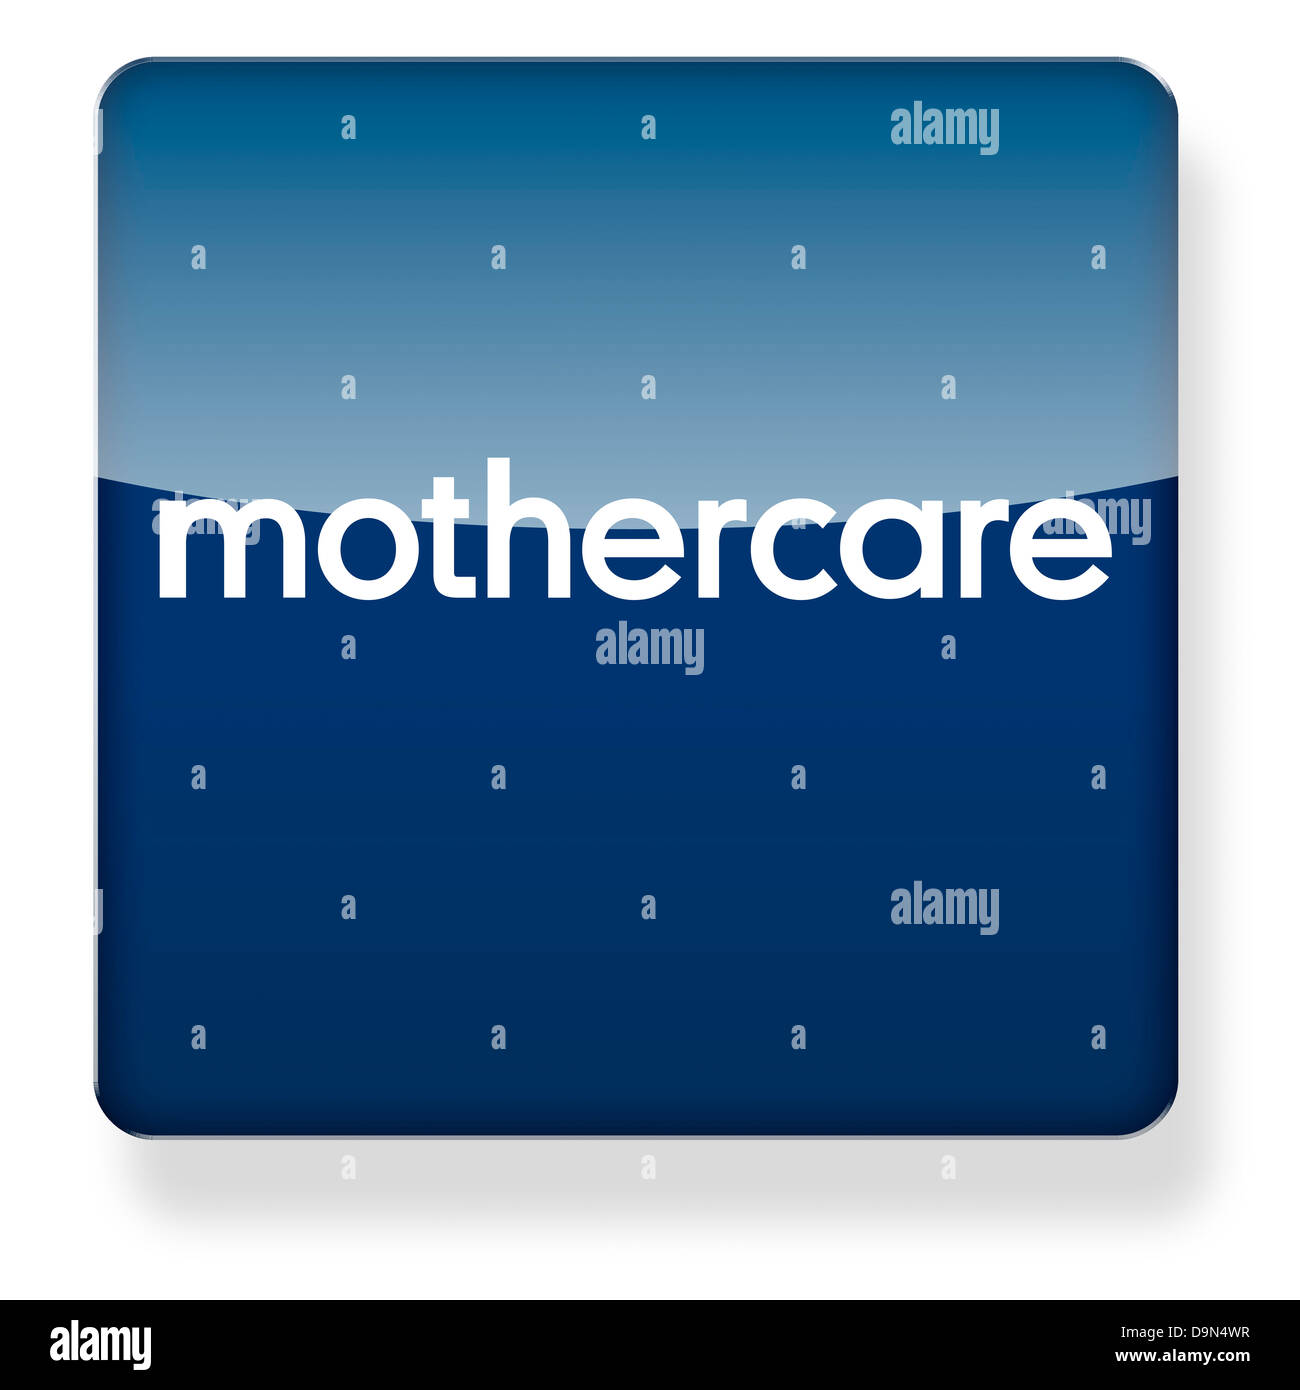 Mothercare logo as an app icon. Clipping path included. - Stock Image